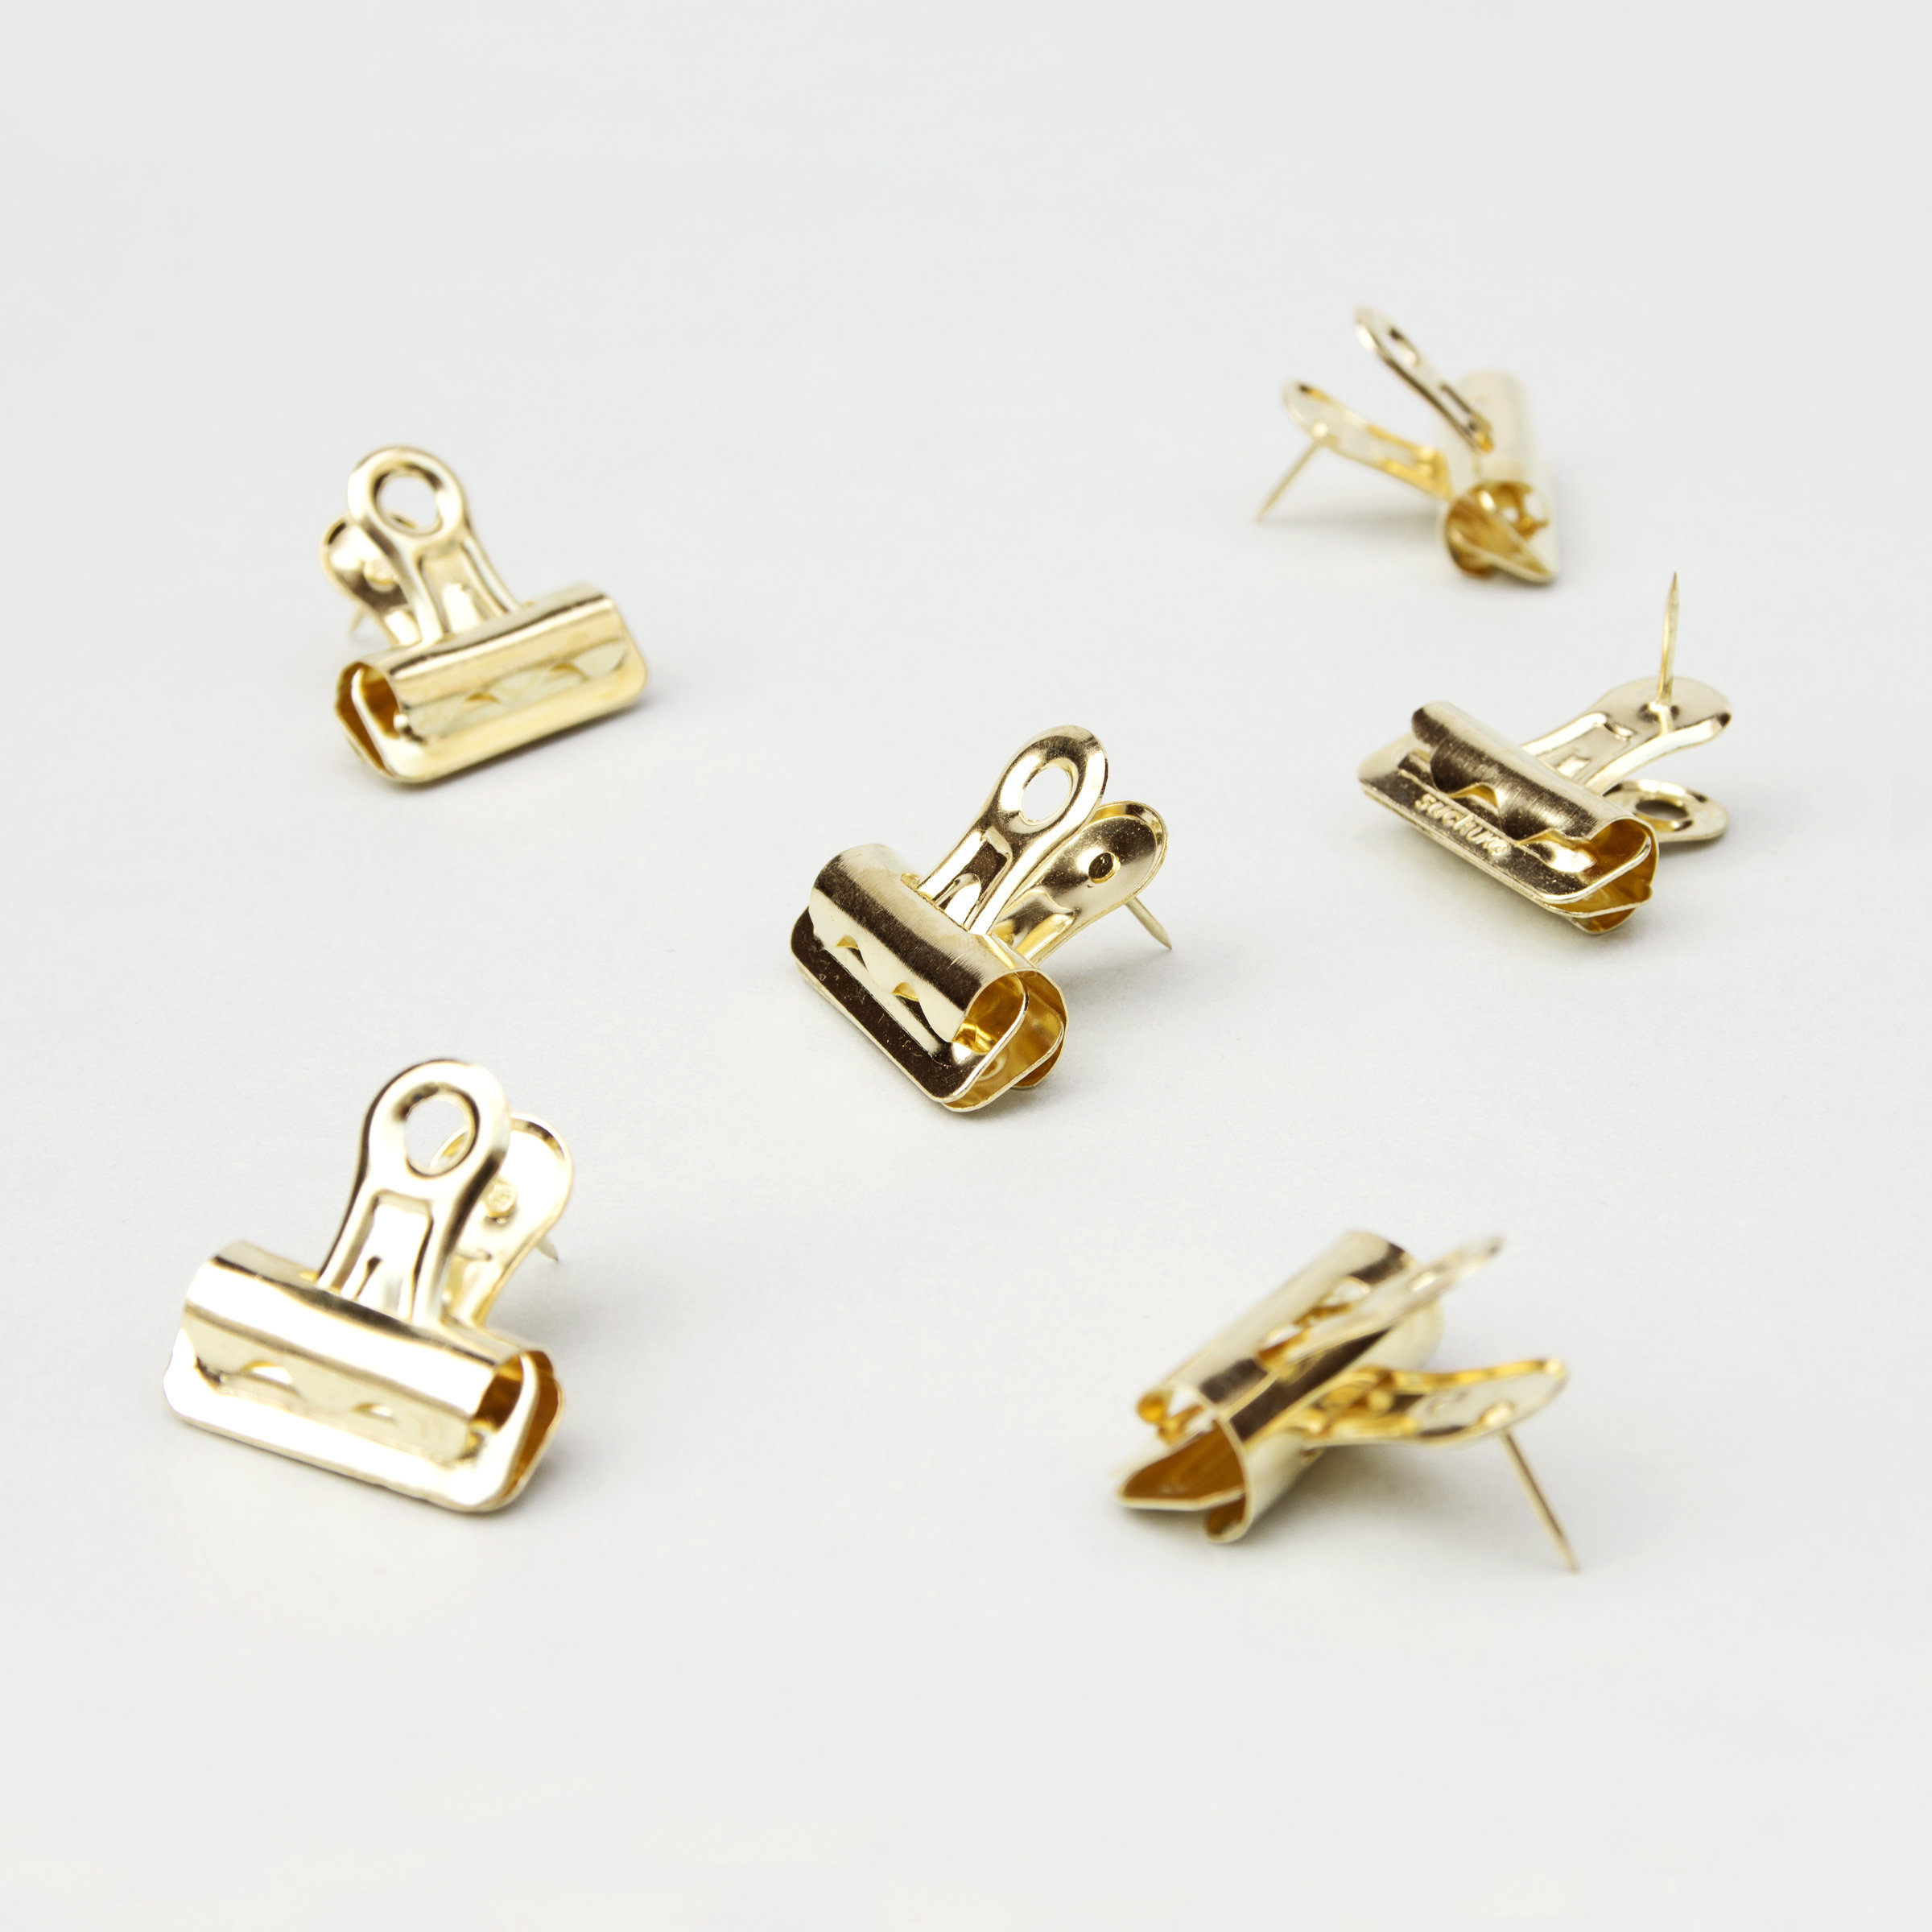 Bulldog push pin clips in gold